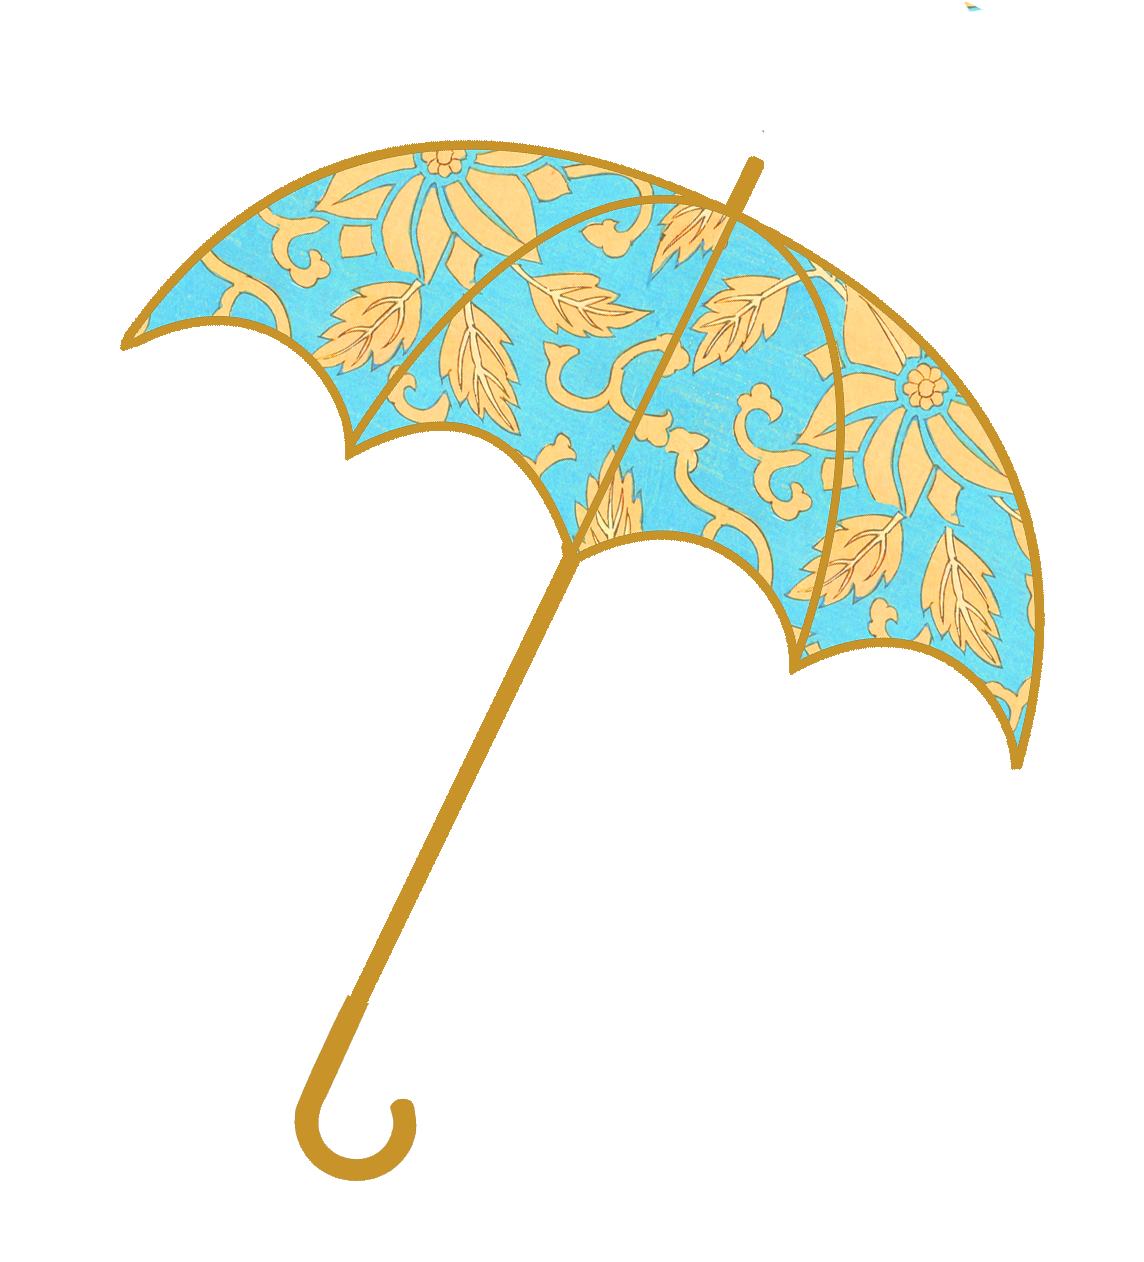 umbrella with blue pattern